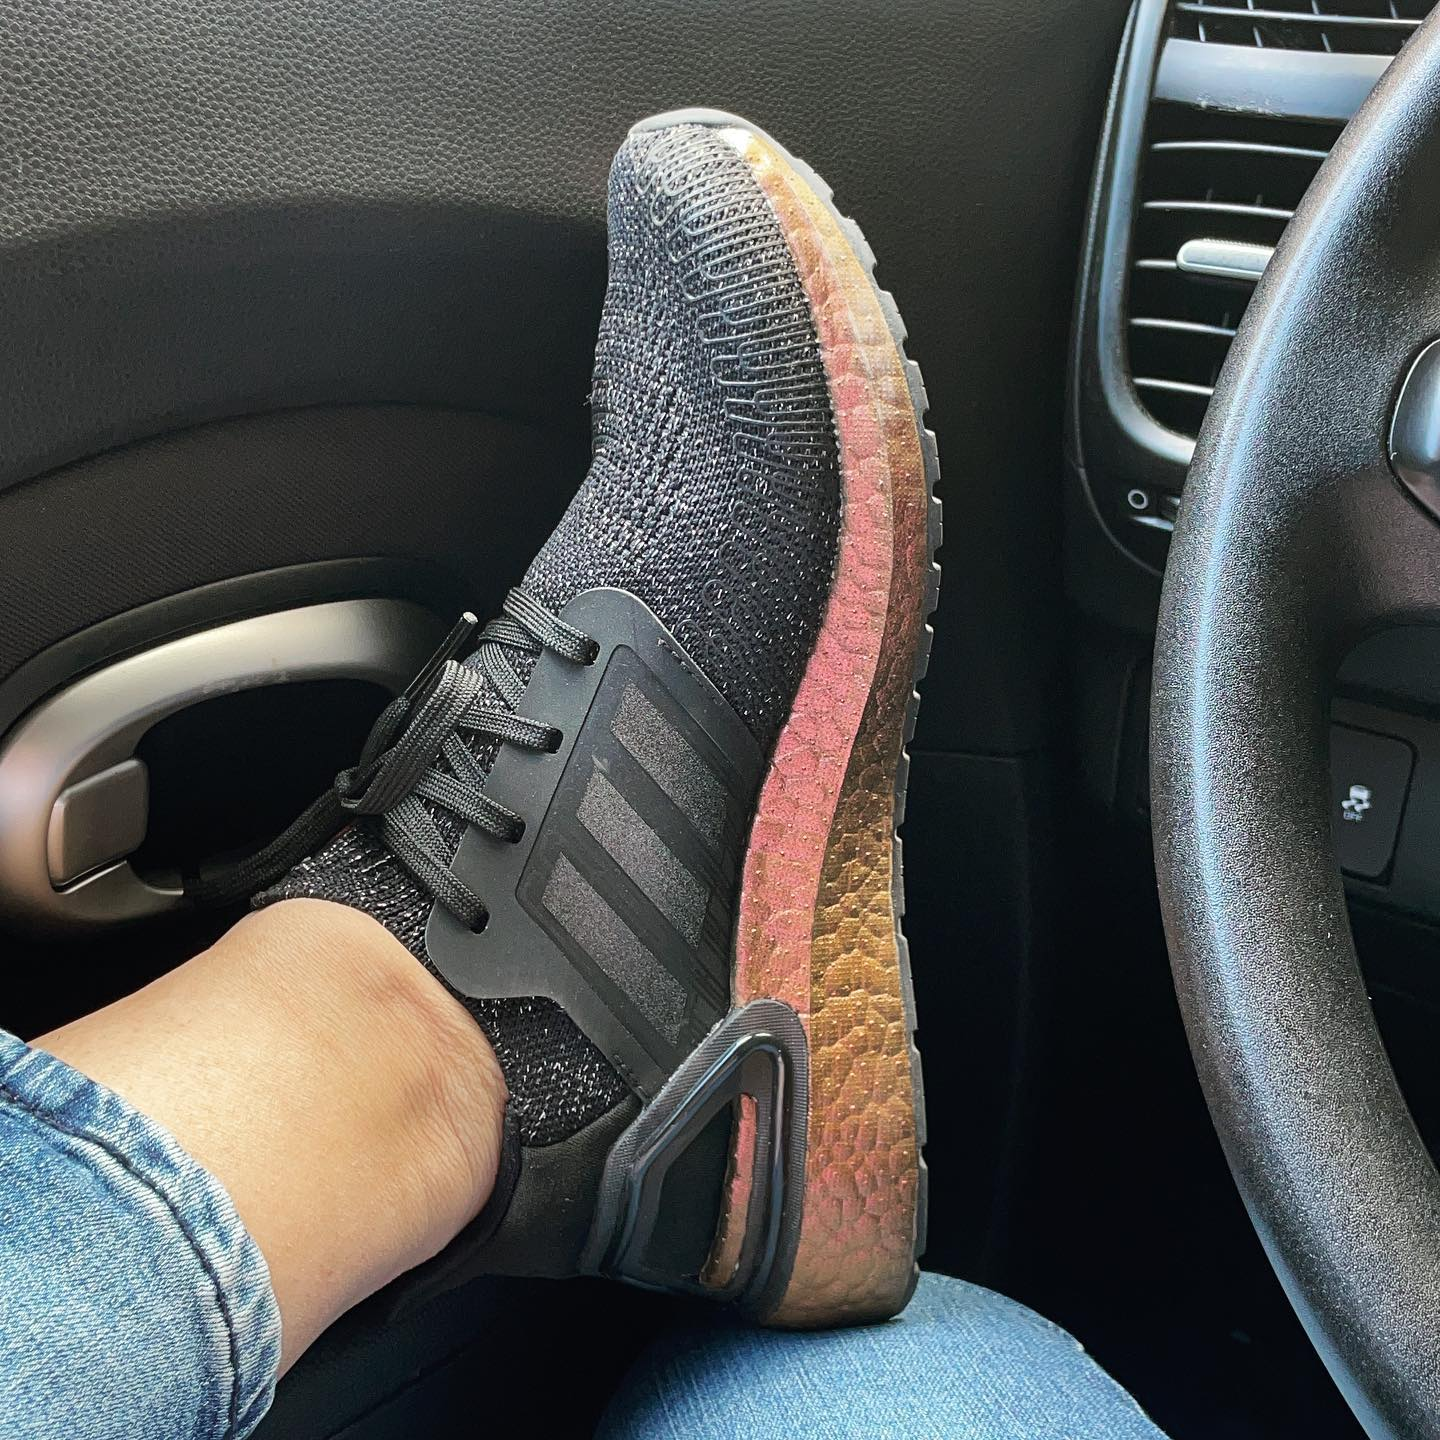 If you thought I'd be able to pass up a pair of black and rose gold iridescent Ultraboosts you were sorely mistaken